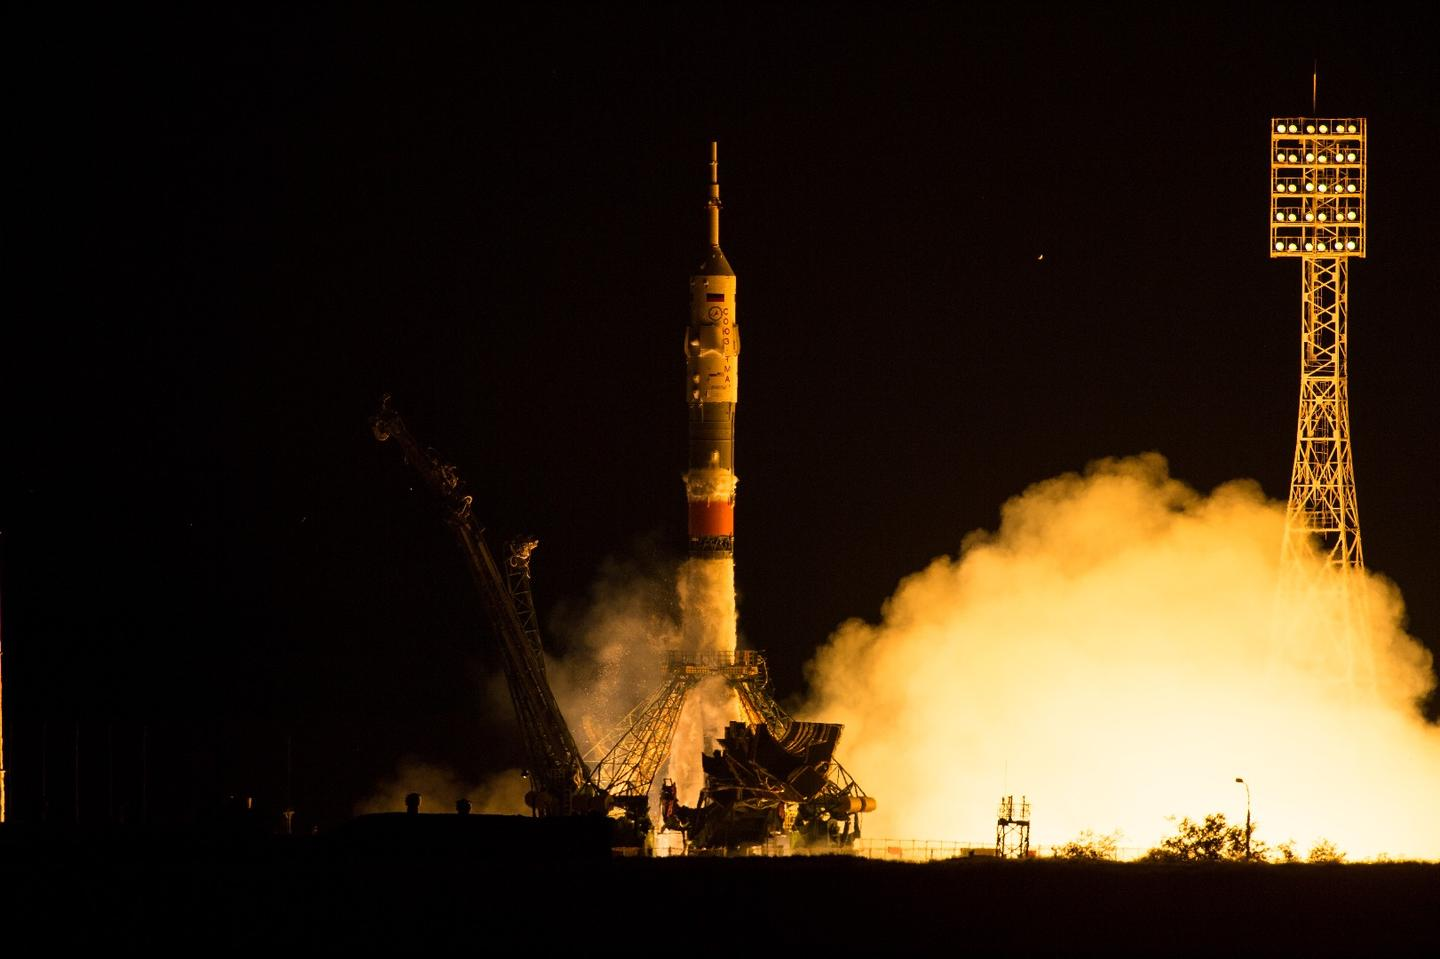 The Soyuz TMA-17M spacecraft was launched from the Baikonur Cosmodrome